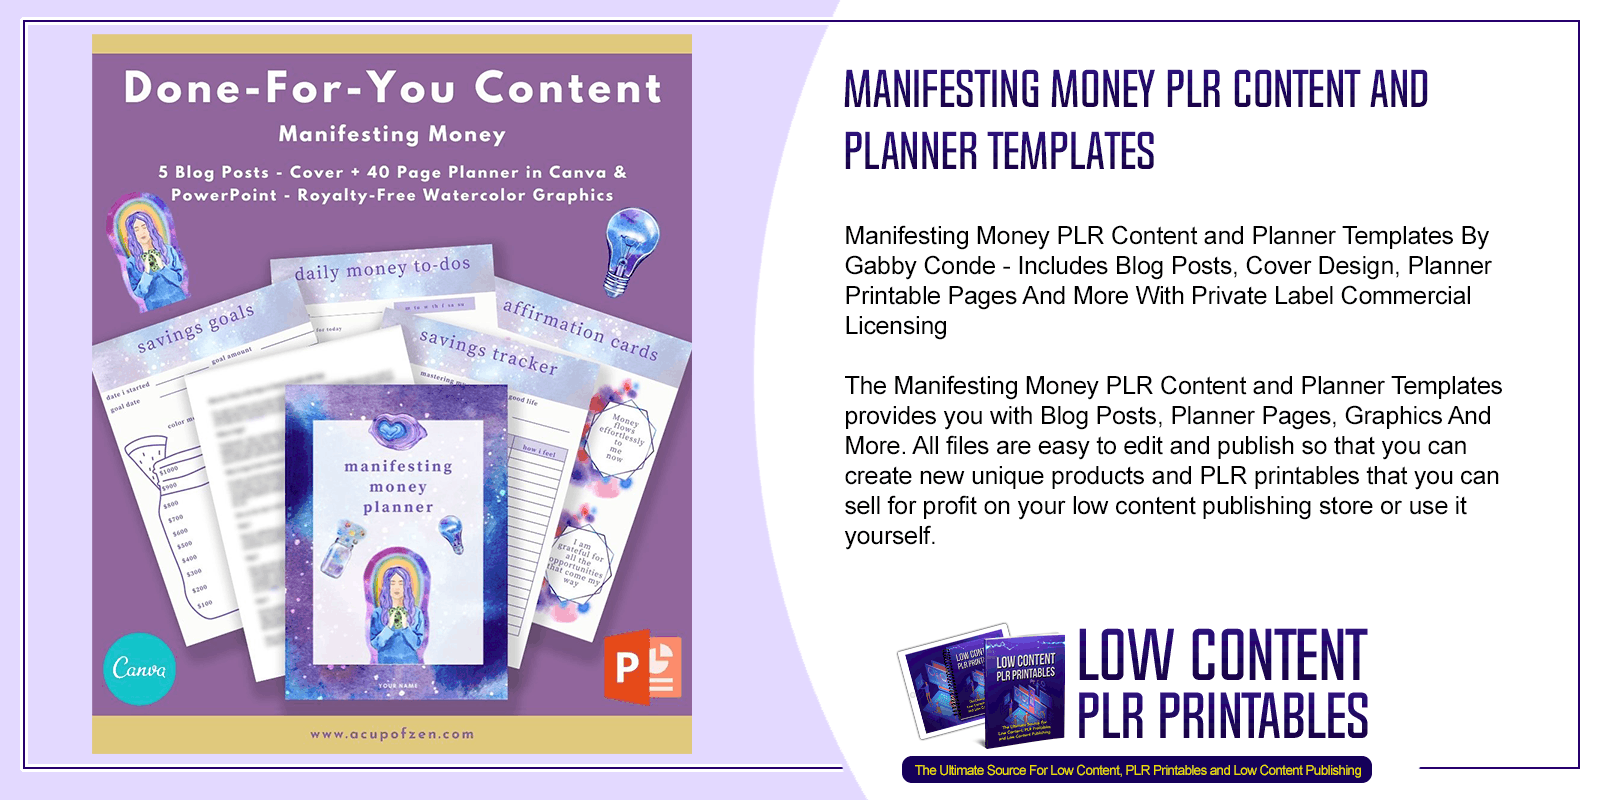 Manifesting Money PLR Content and Planner Templates